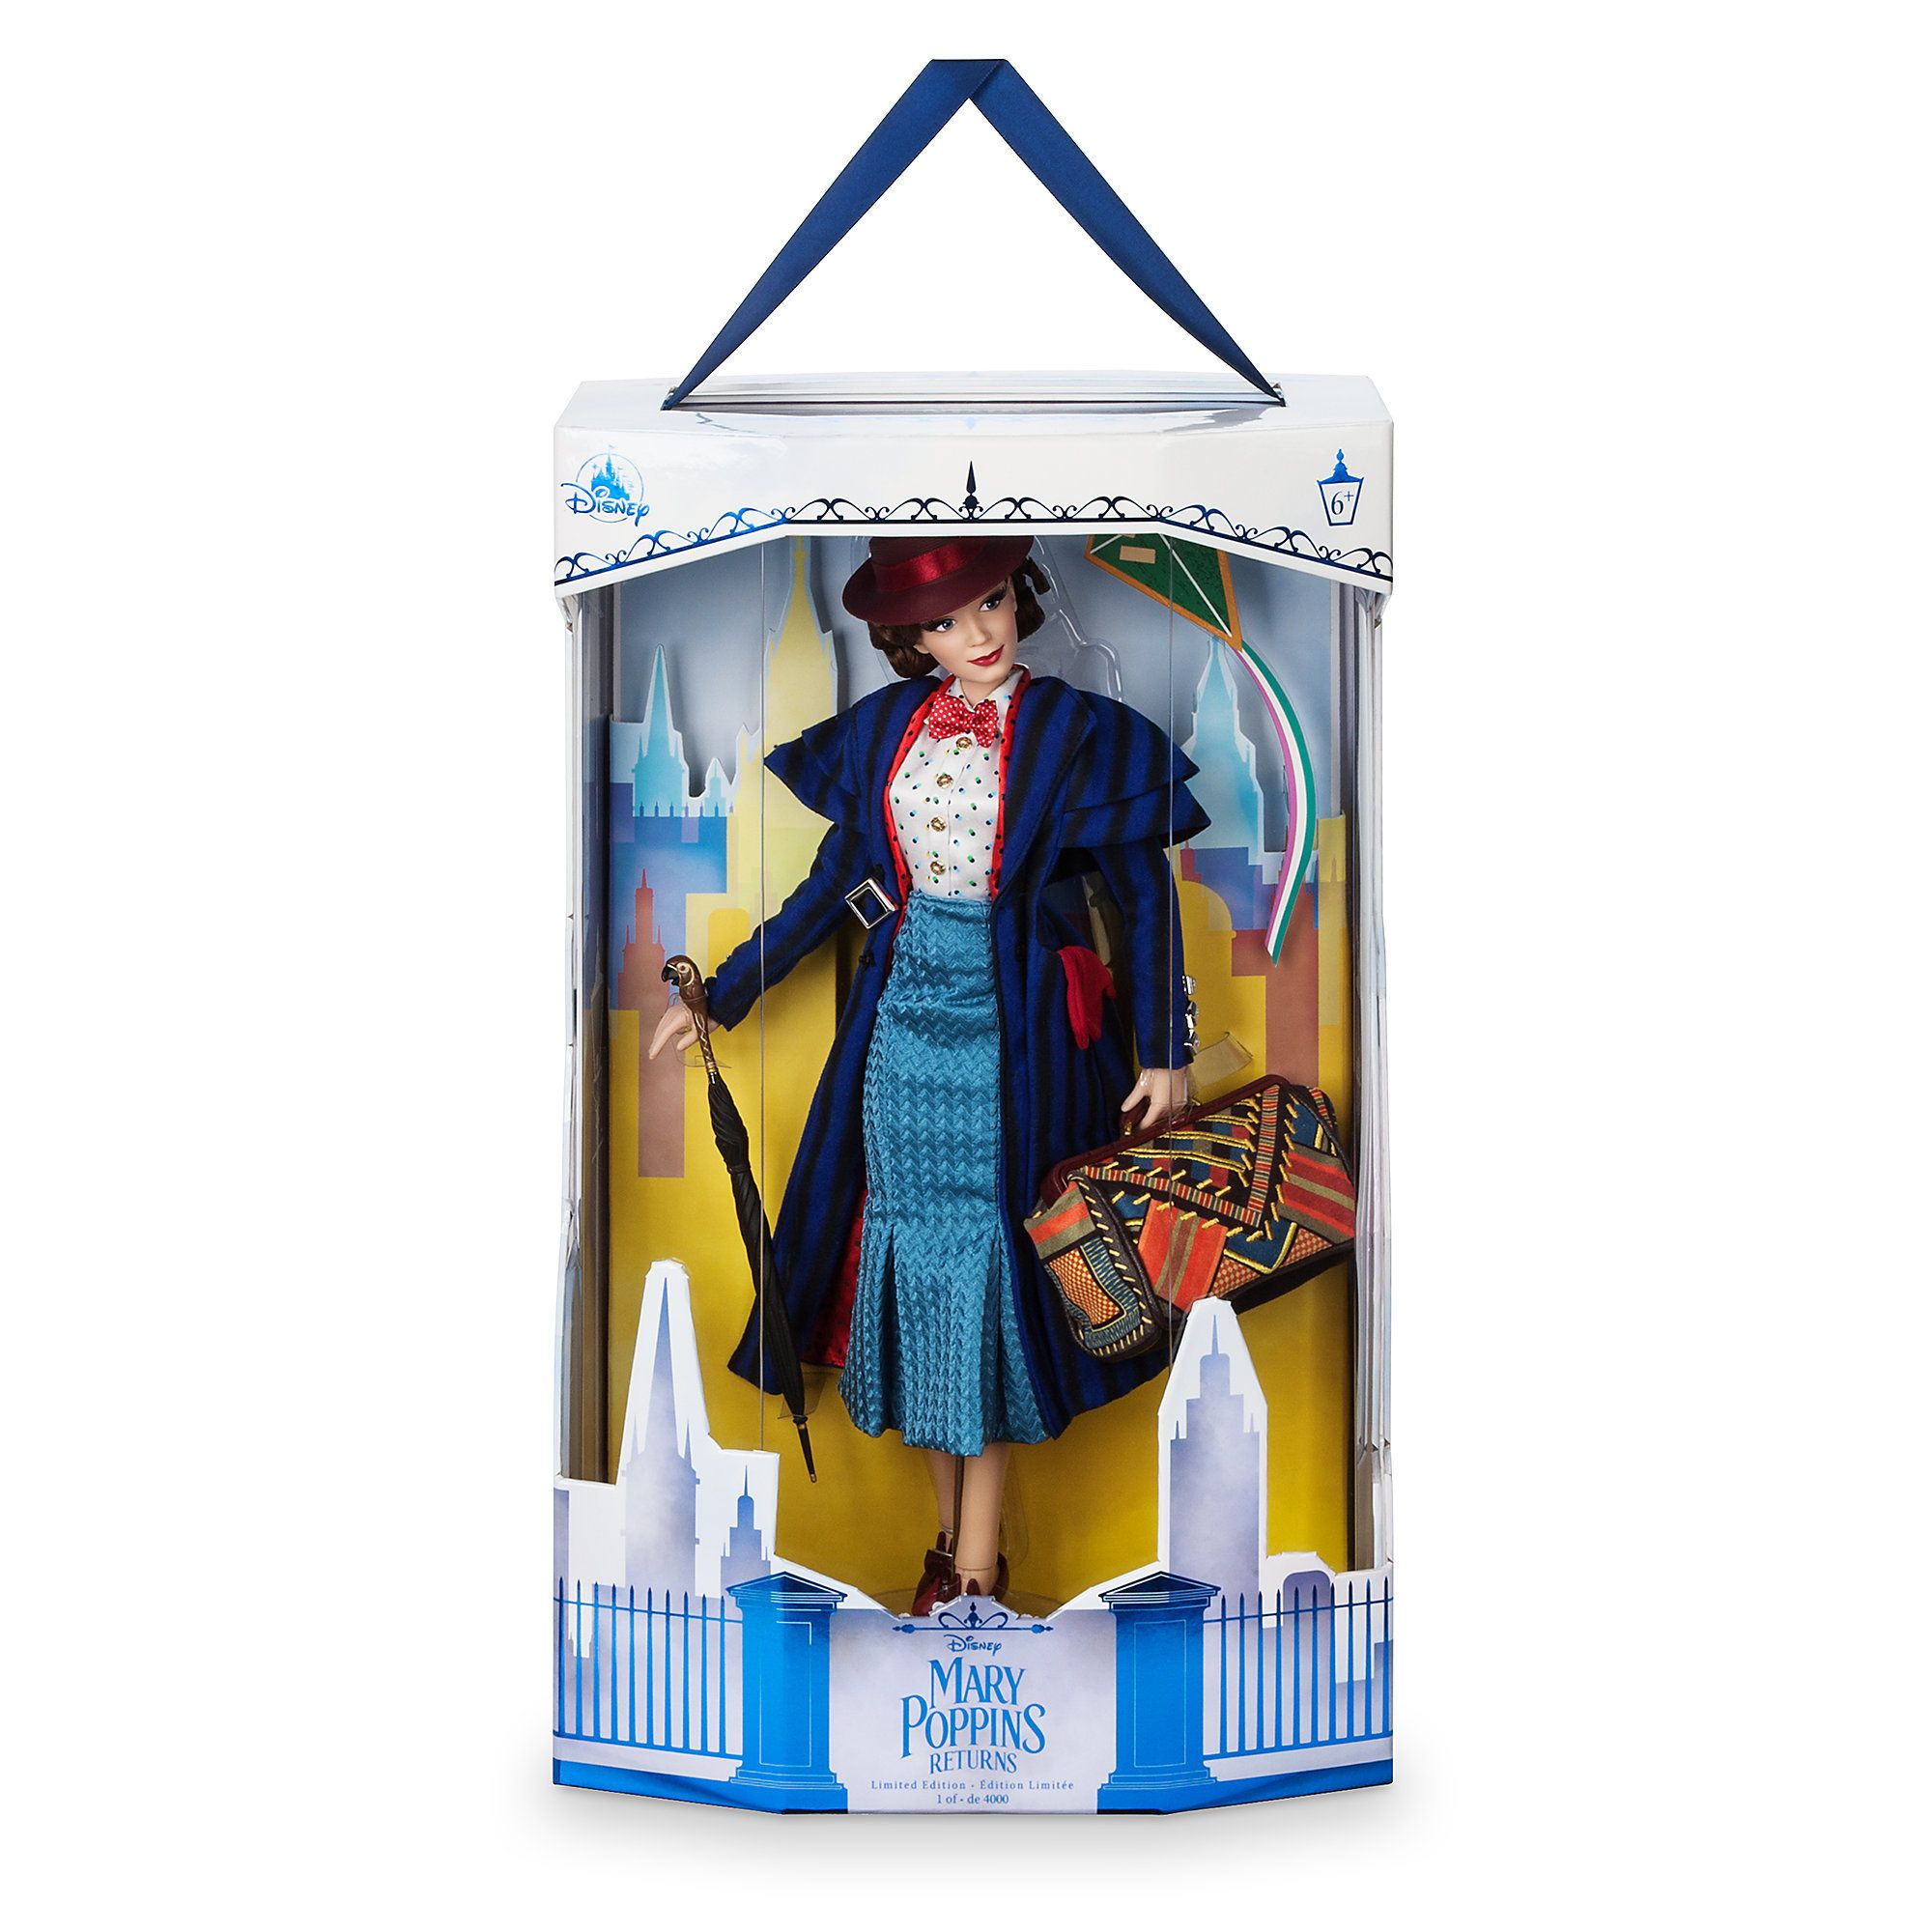 eee8af23749 Mary Poppins Returns Barbie Doll - Limited Edition - 16